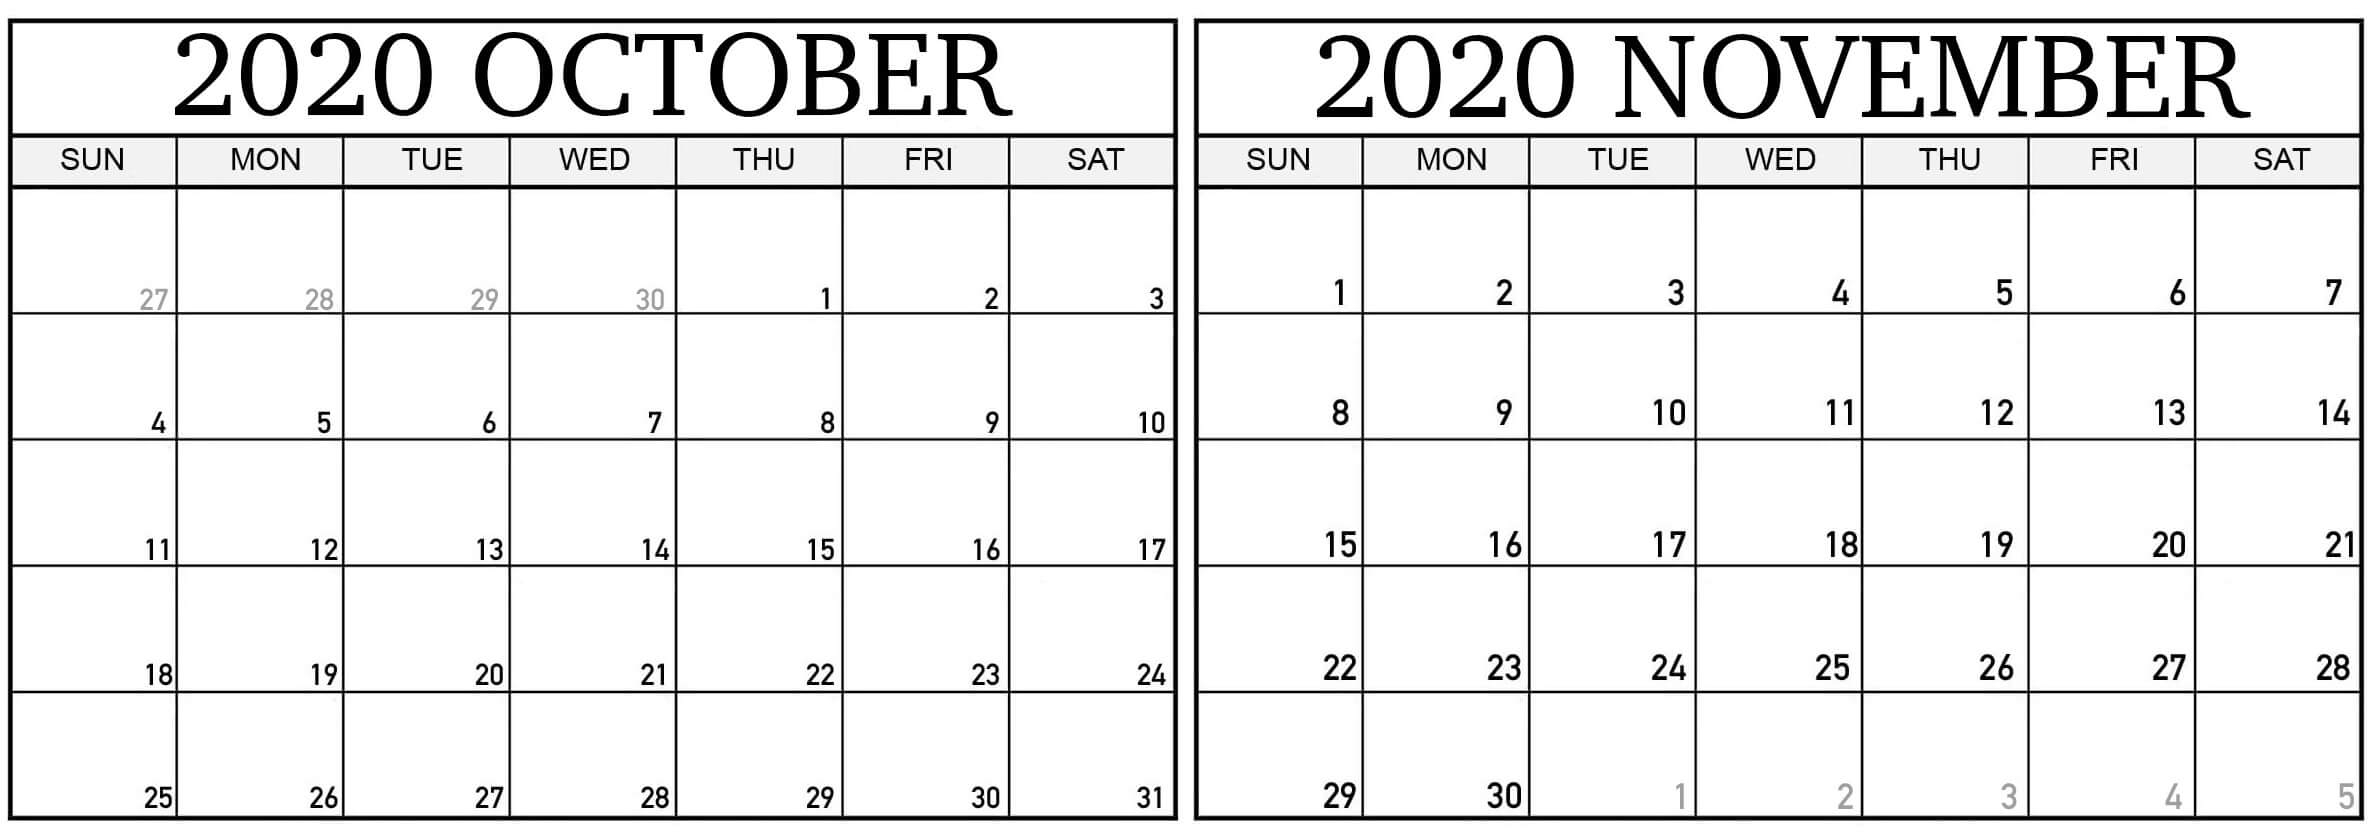 Free 2020 October November Calendar With Holidays - Set Your